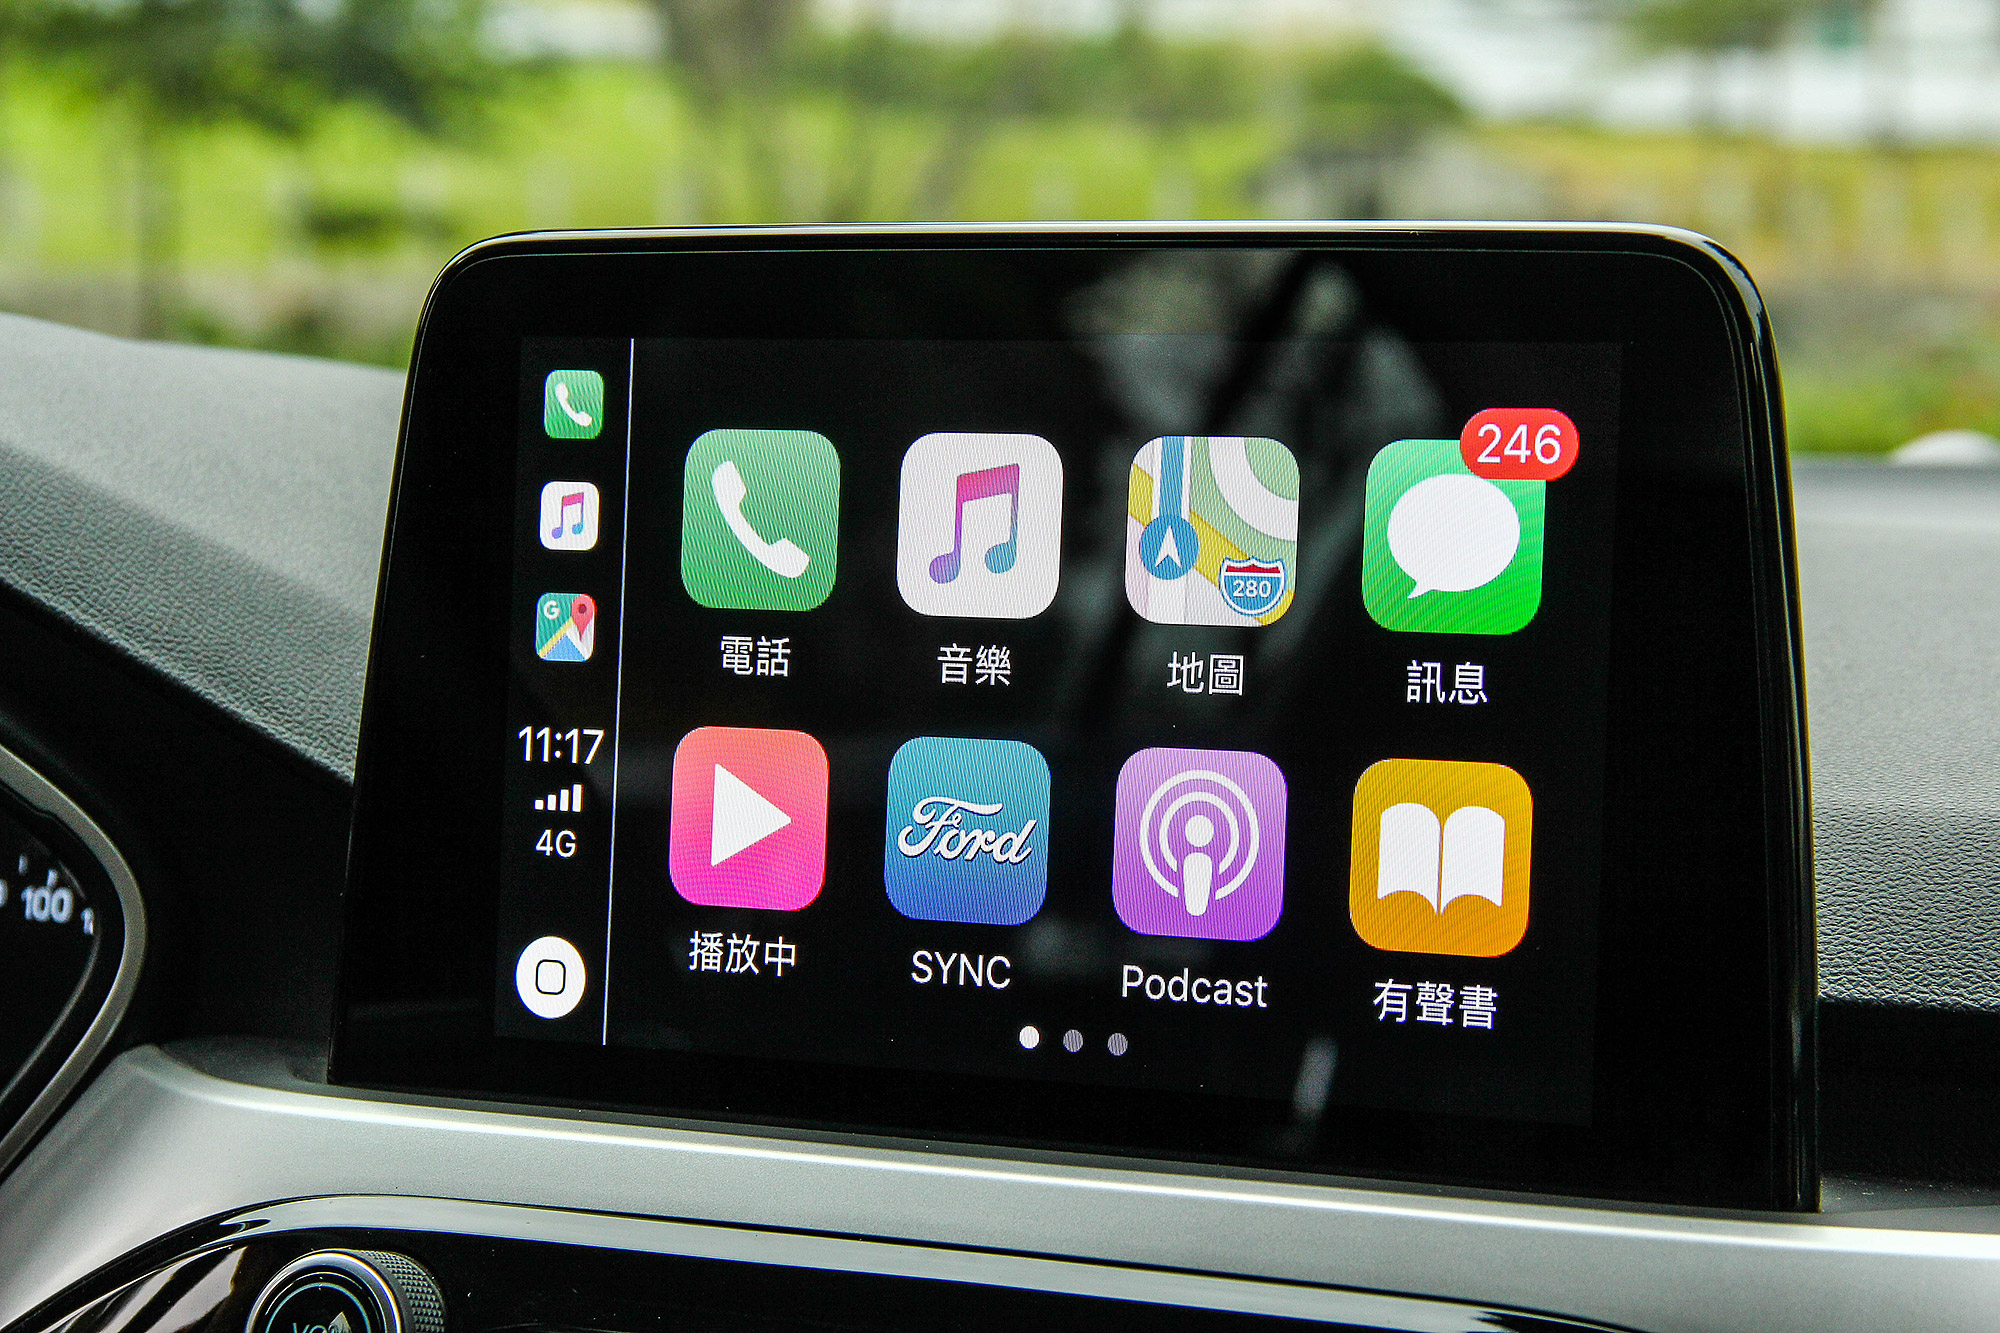 支援 Apple CarPlay 智慧型手機連結。